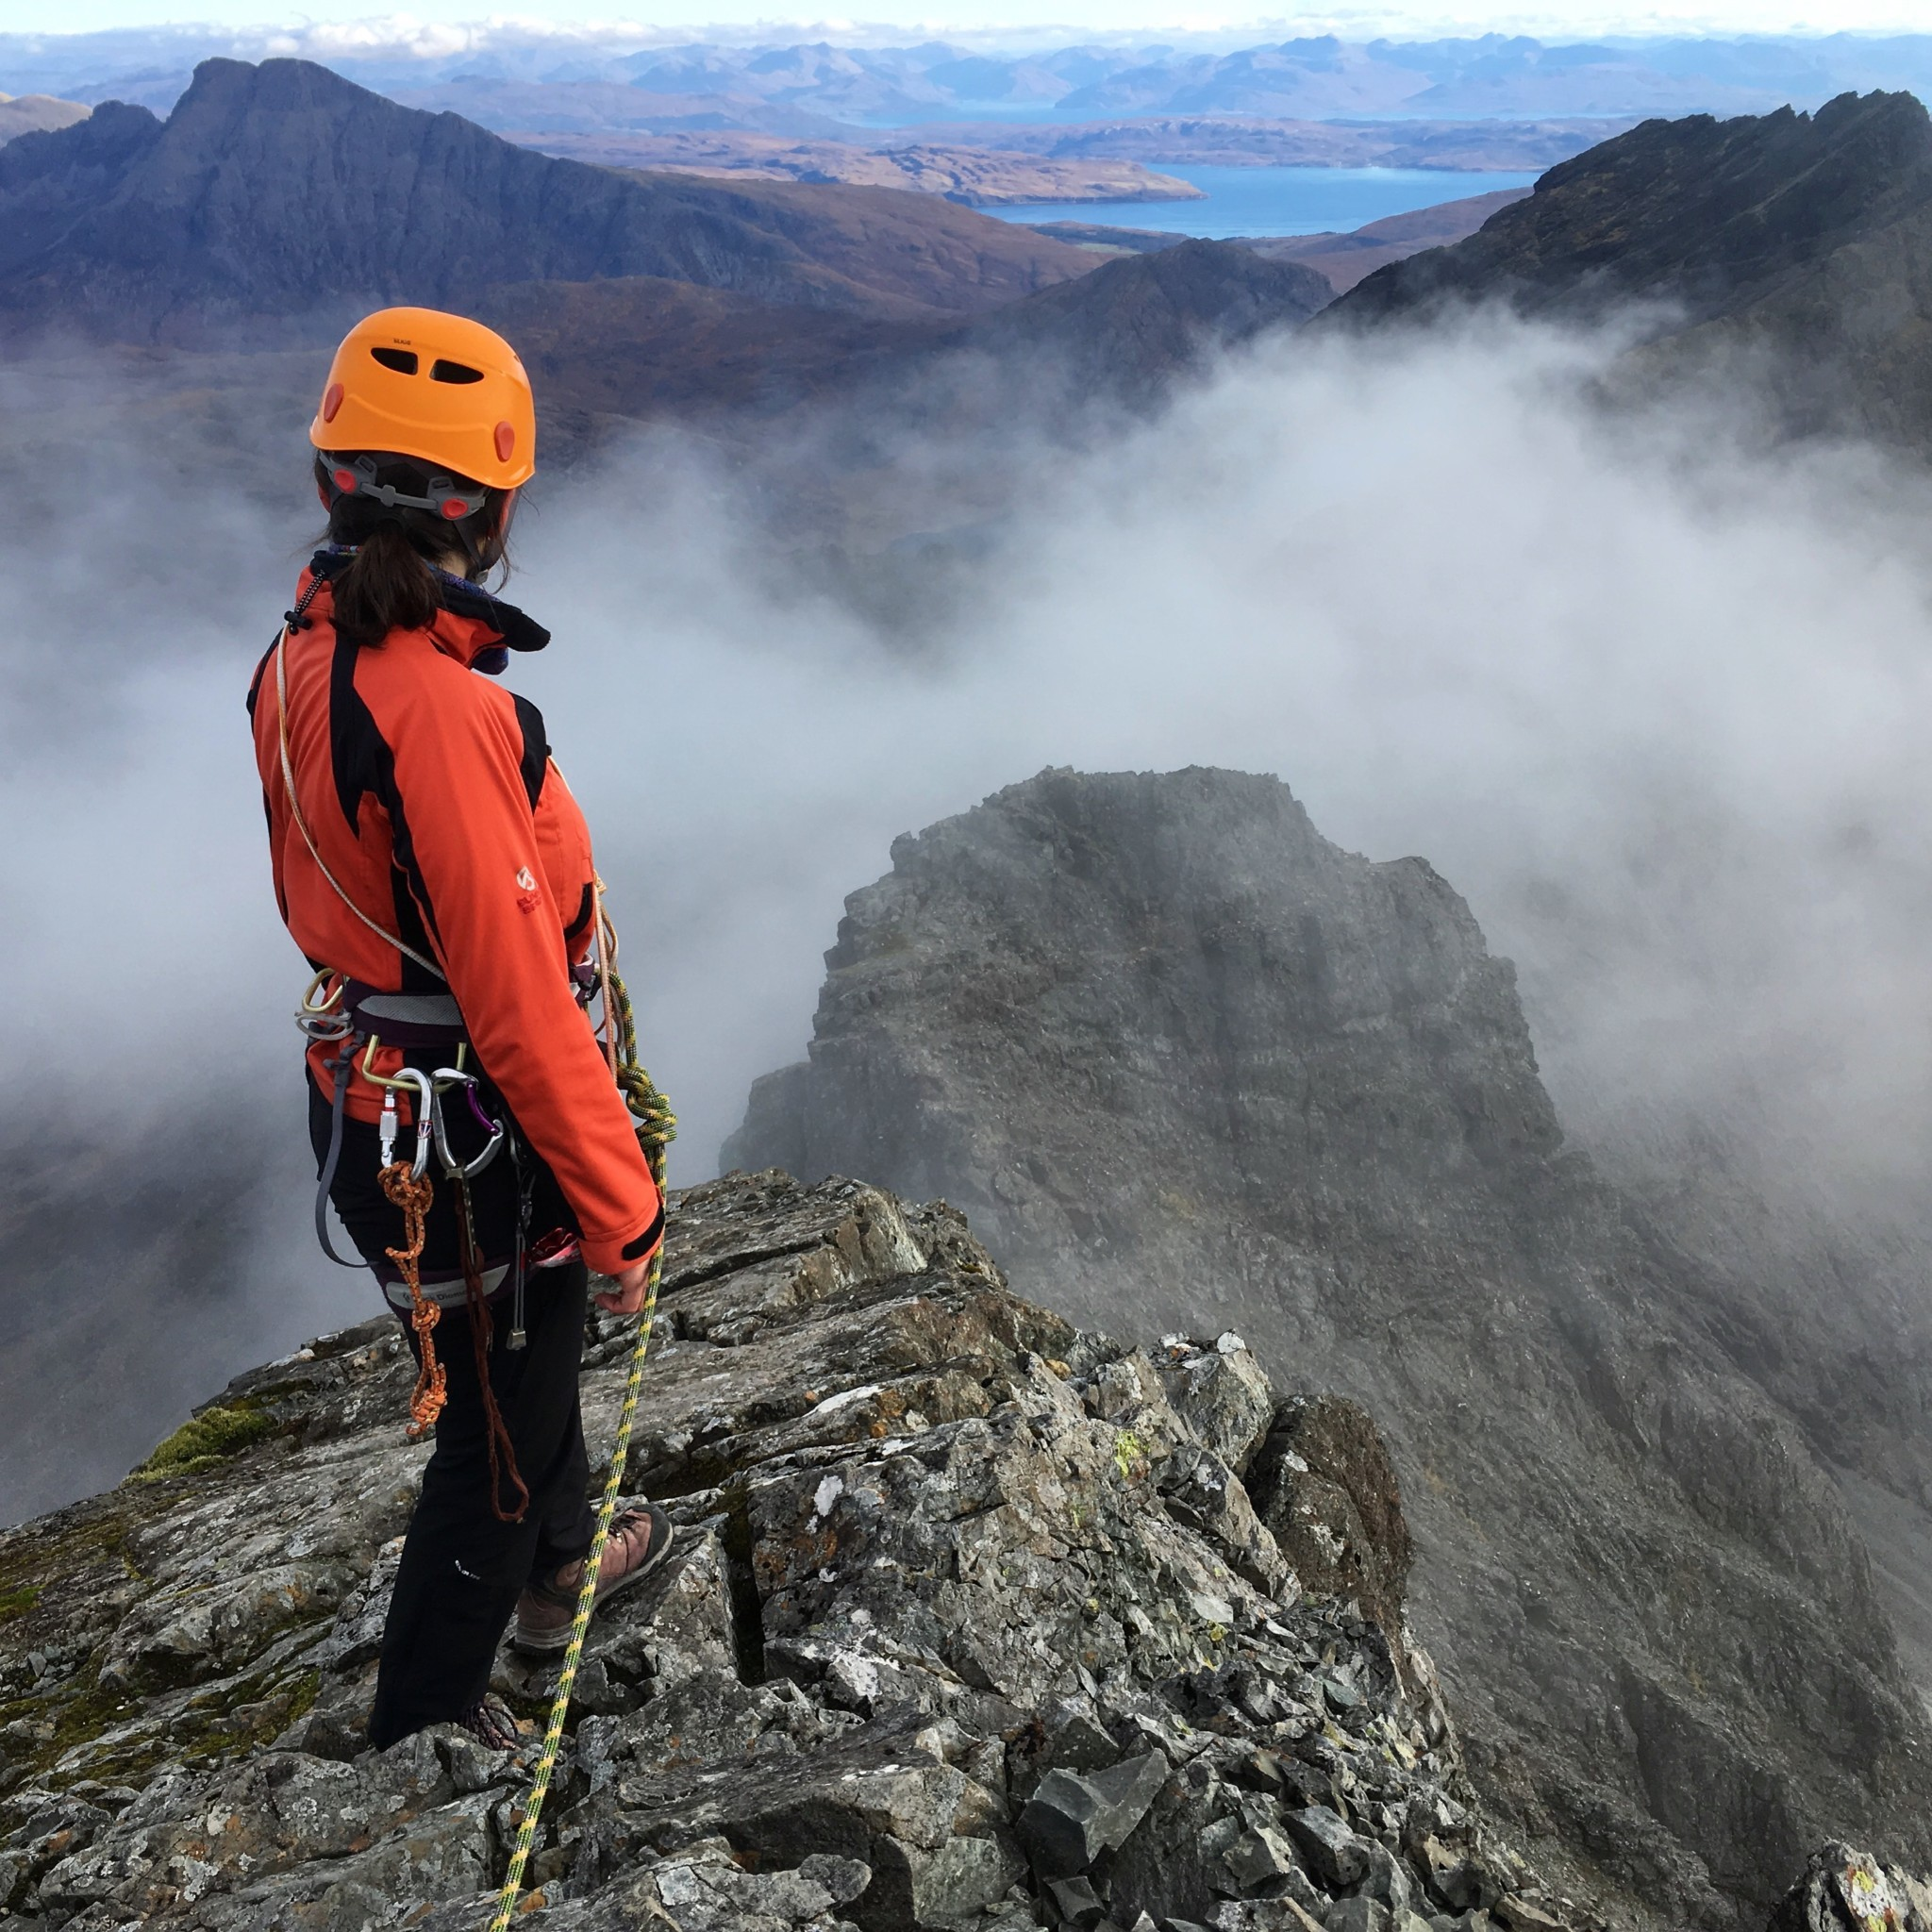 On the summit of the Inaccessible Pinnacle, or In Pin, on the Cuillin Ridge on Skye.